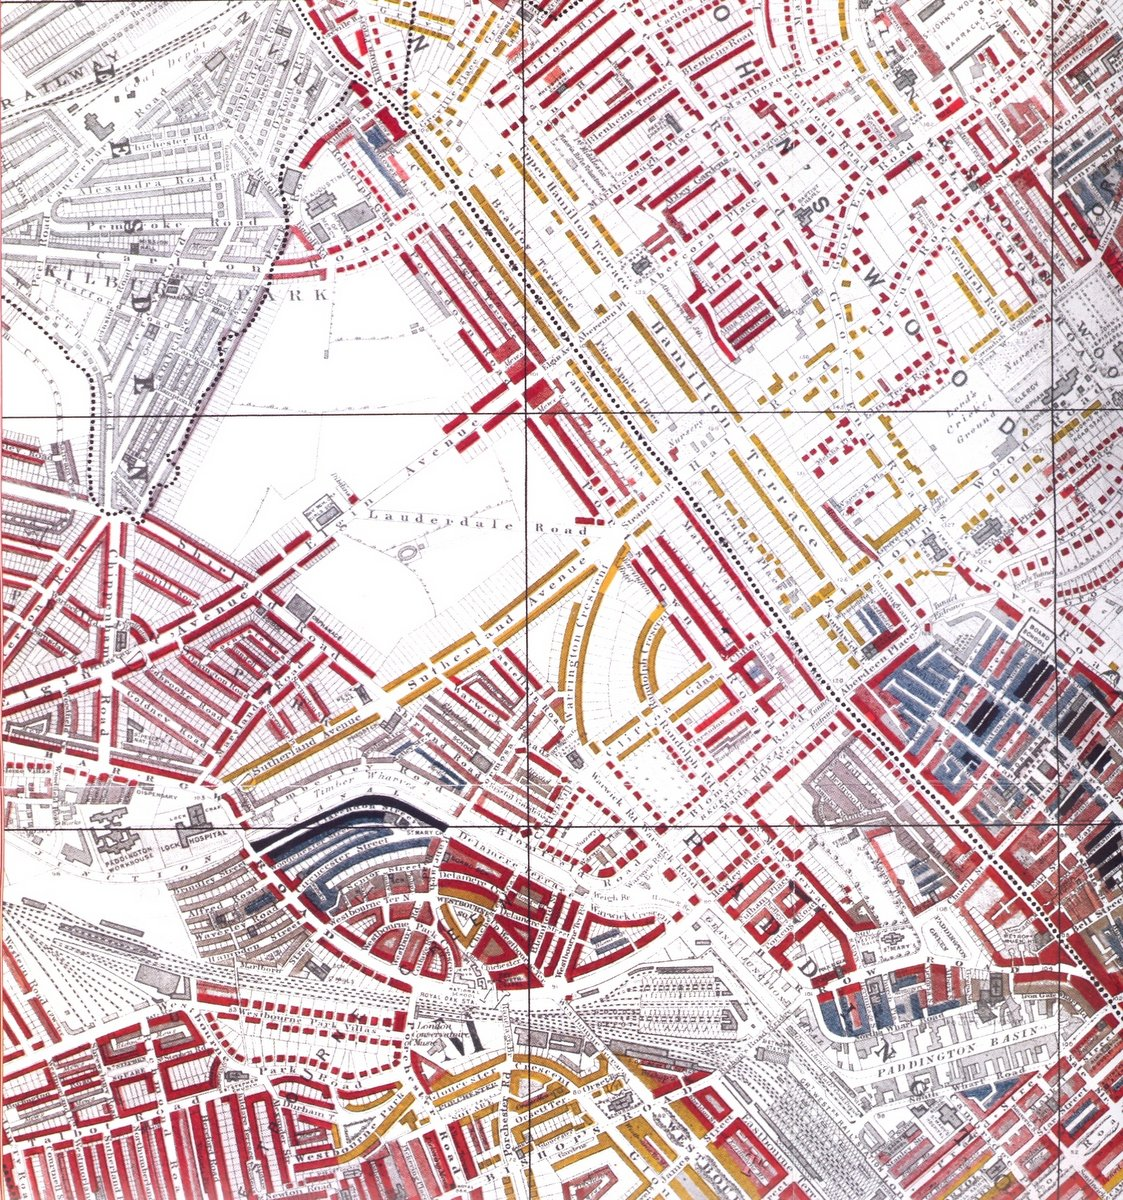 Paddington Green area in Charles Booth's poverty maps